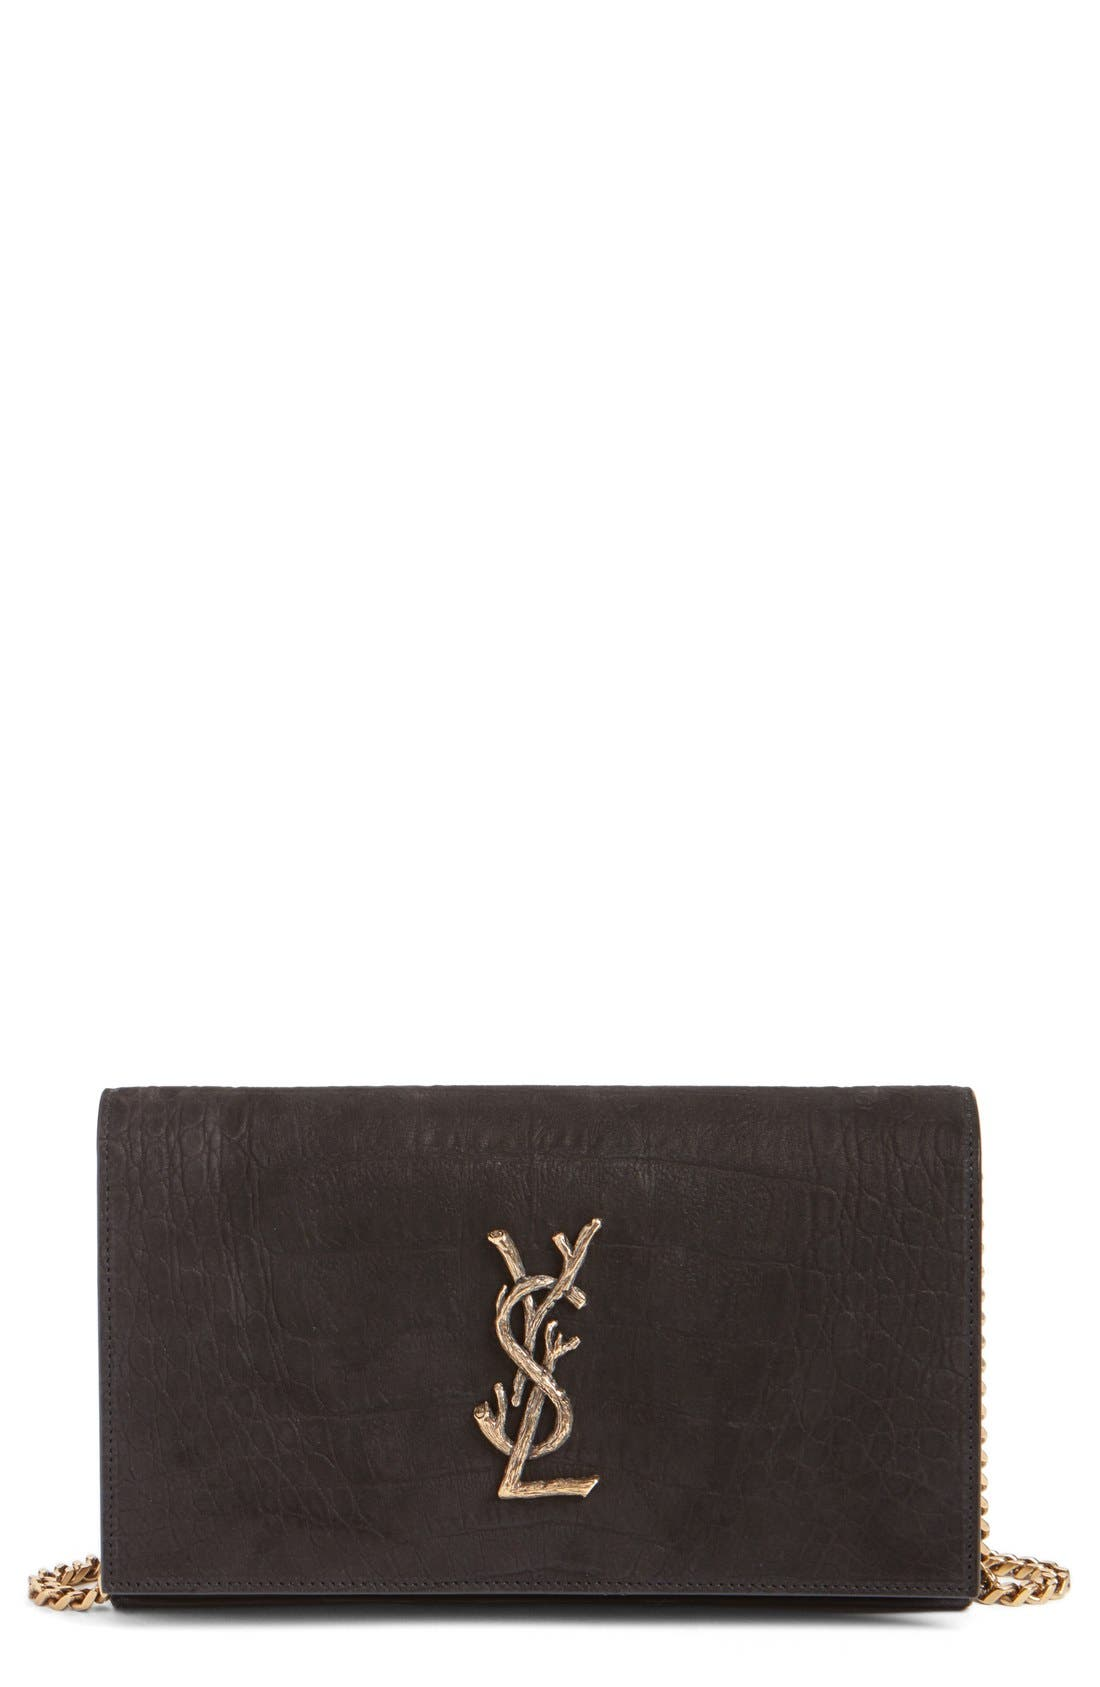 Main Image - Saint Laurent 'Small Kate - Tree' Croc Embossed Calfskin Leather Wallet on a Chain